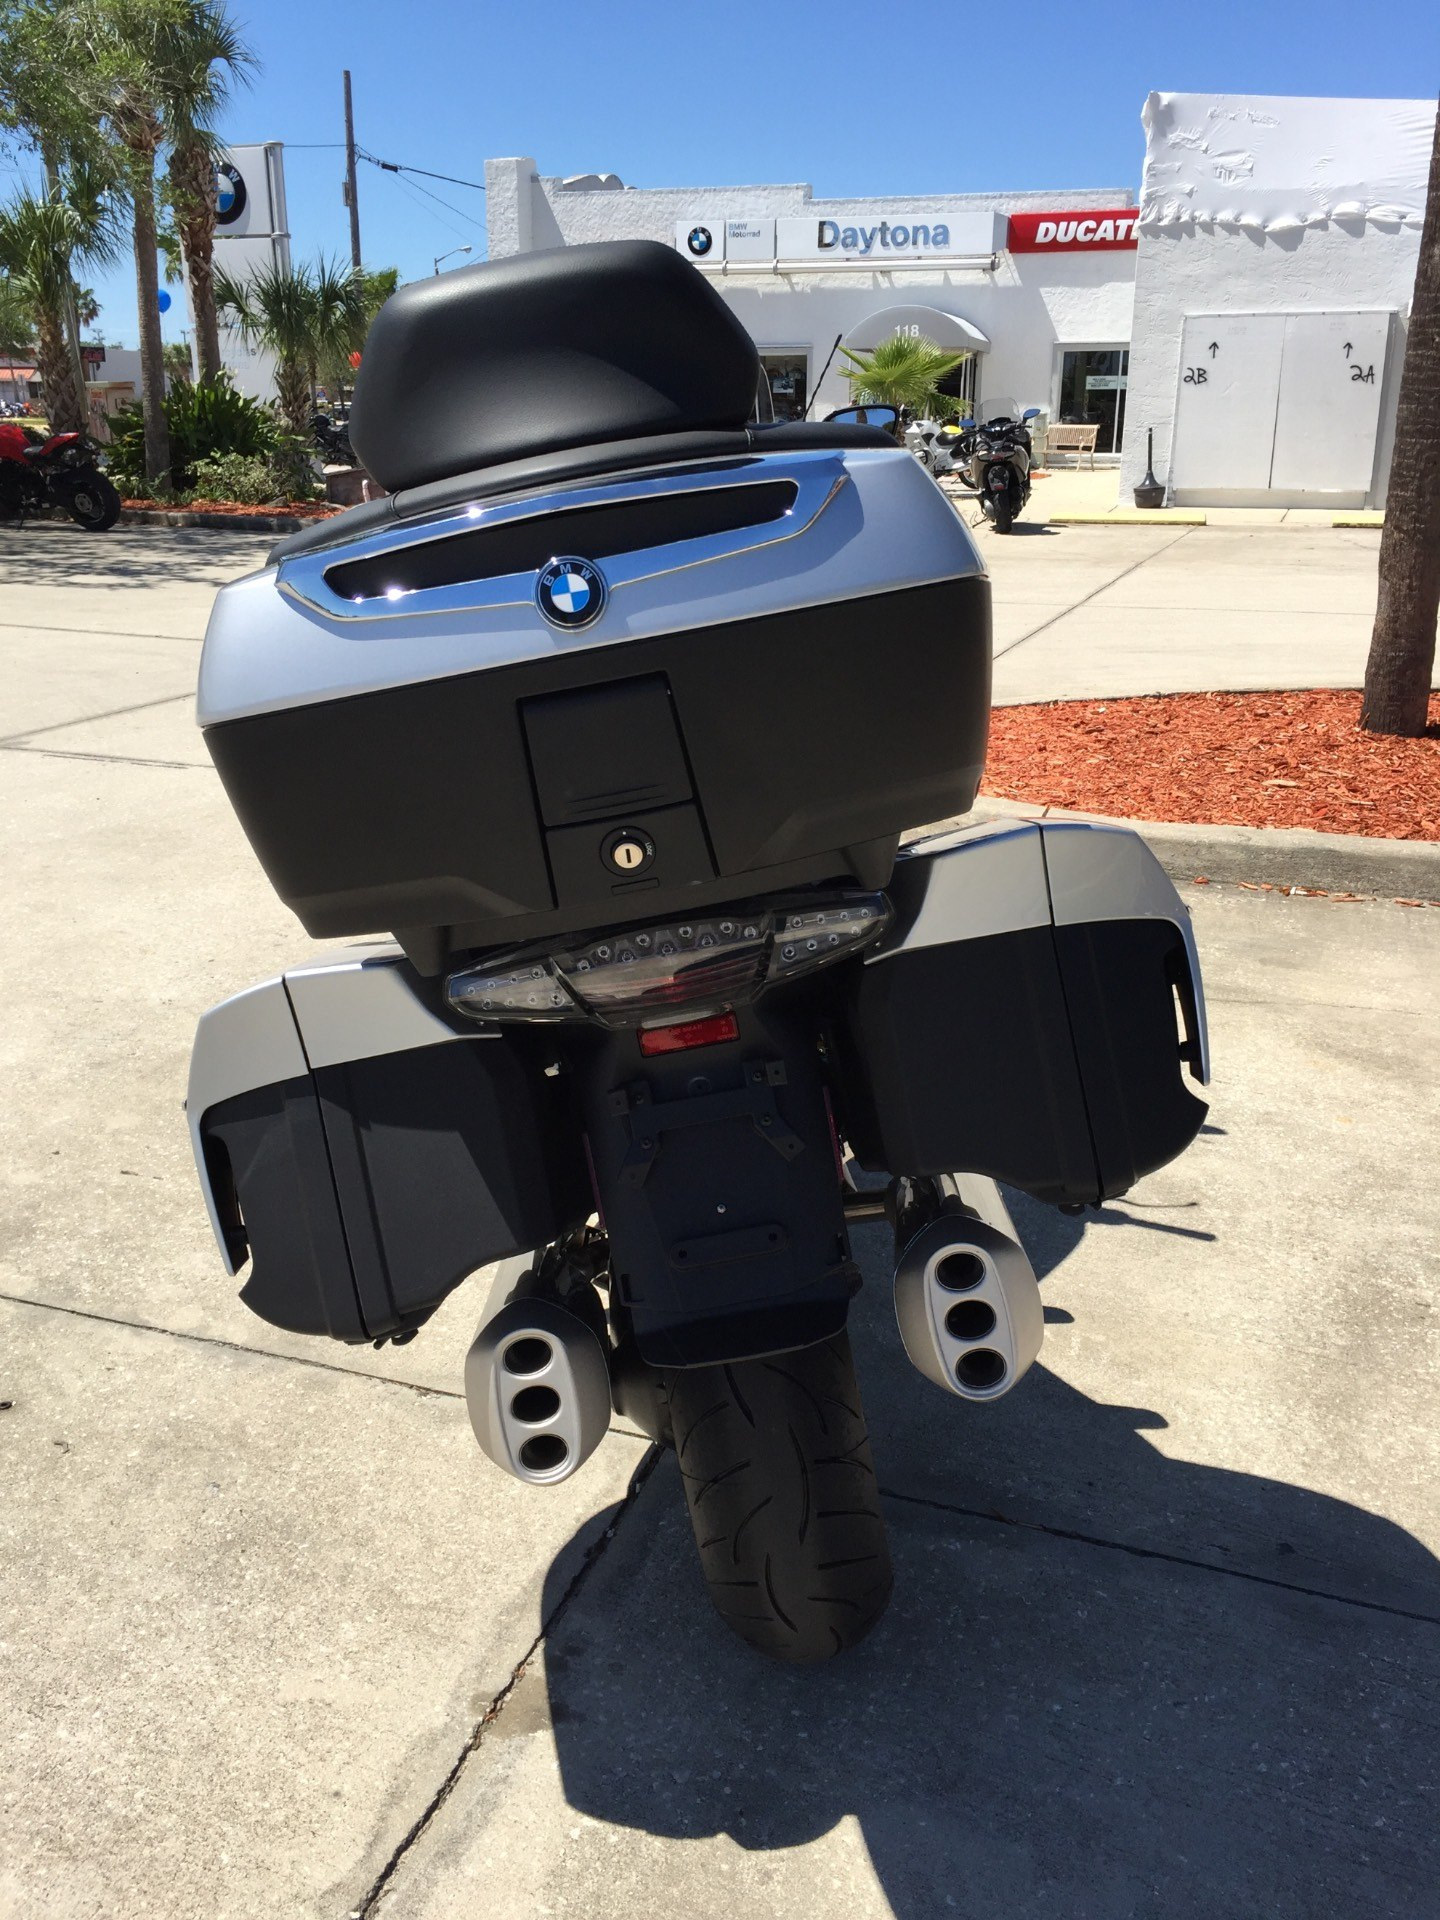 2016 BMW K 1600 GTL in Daytona Beach, Florida